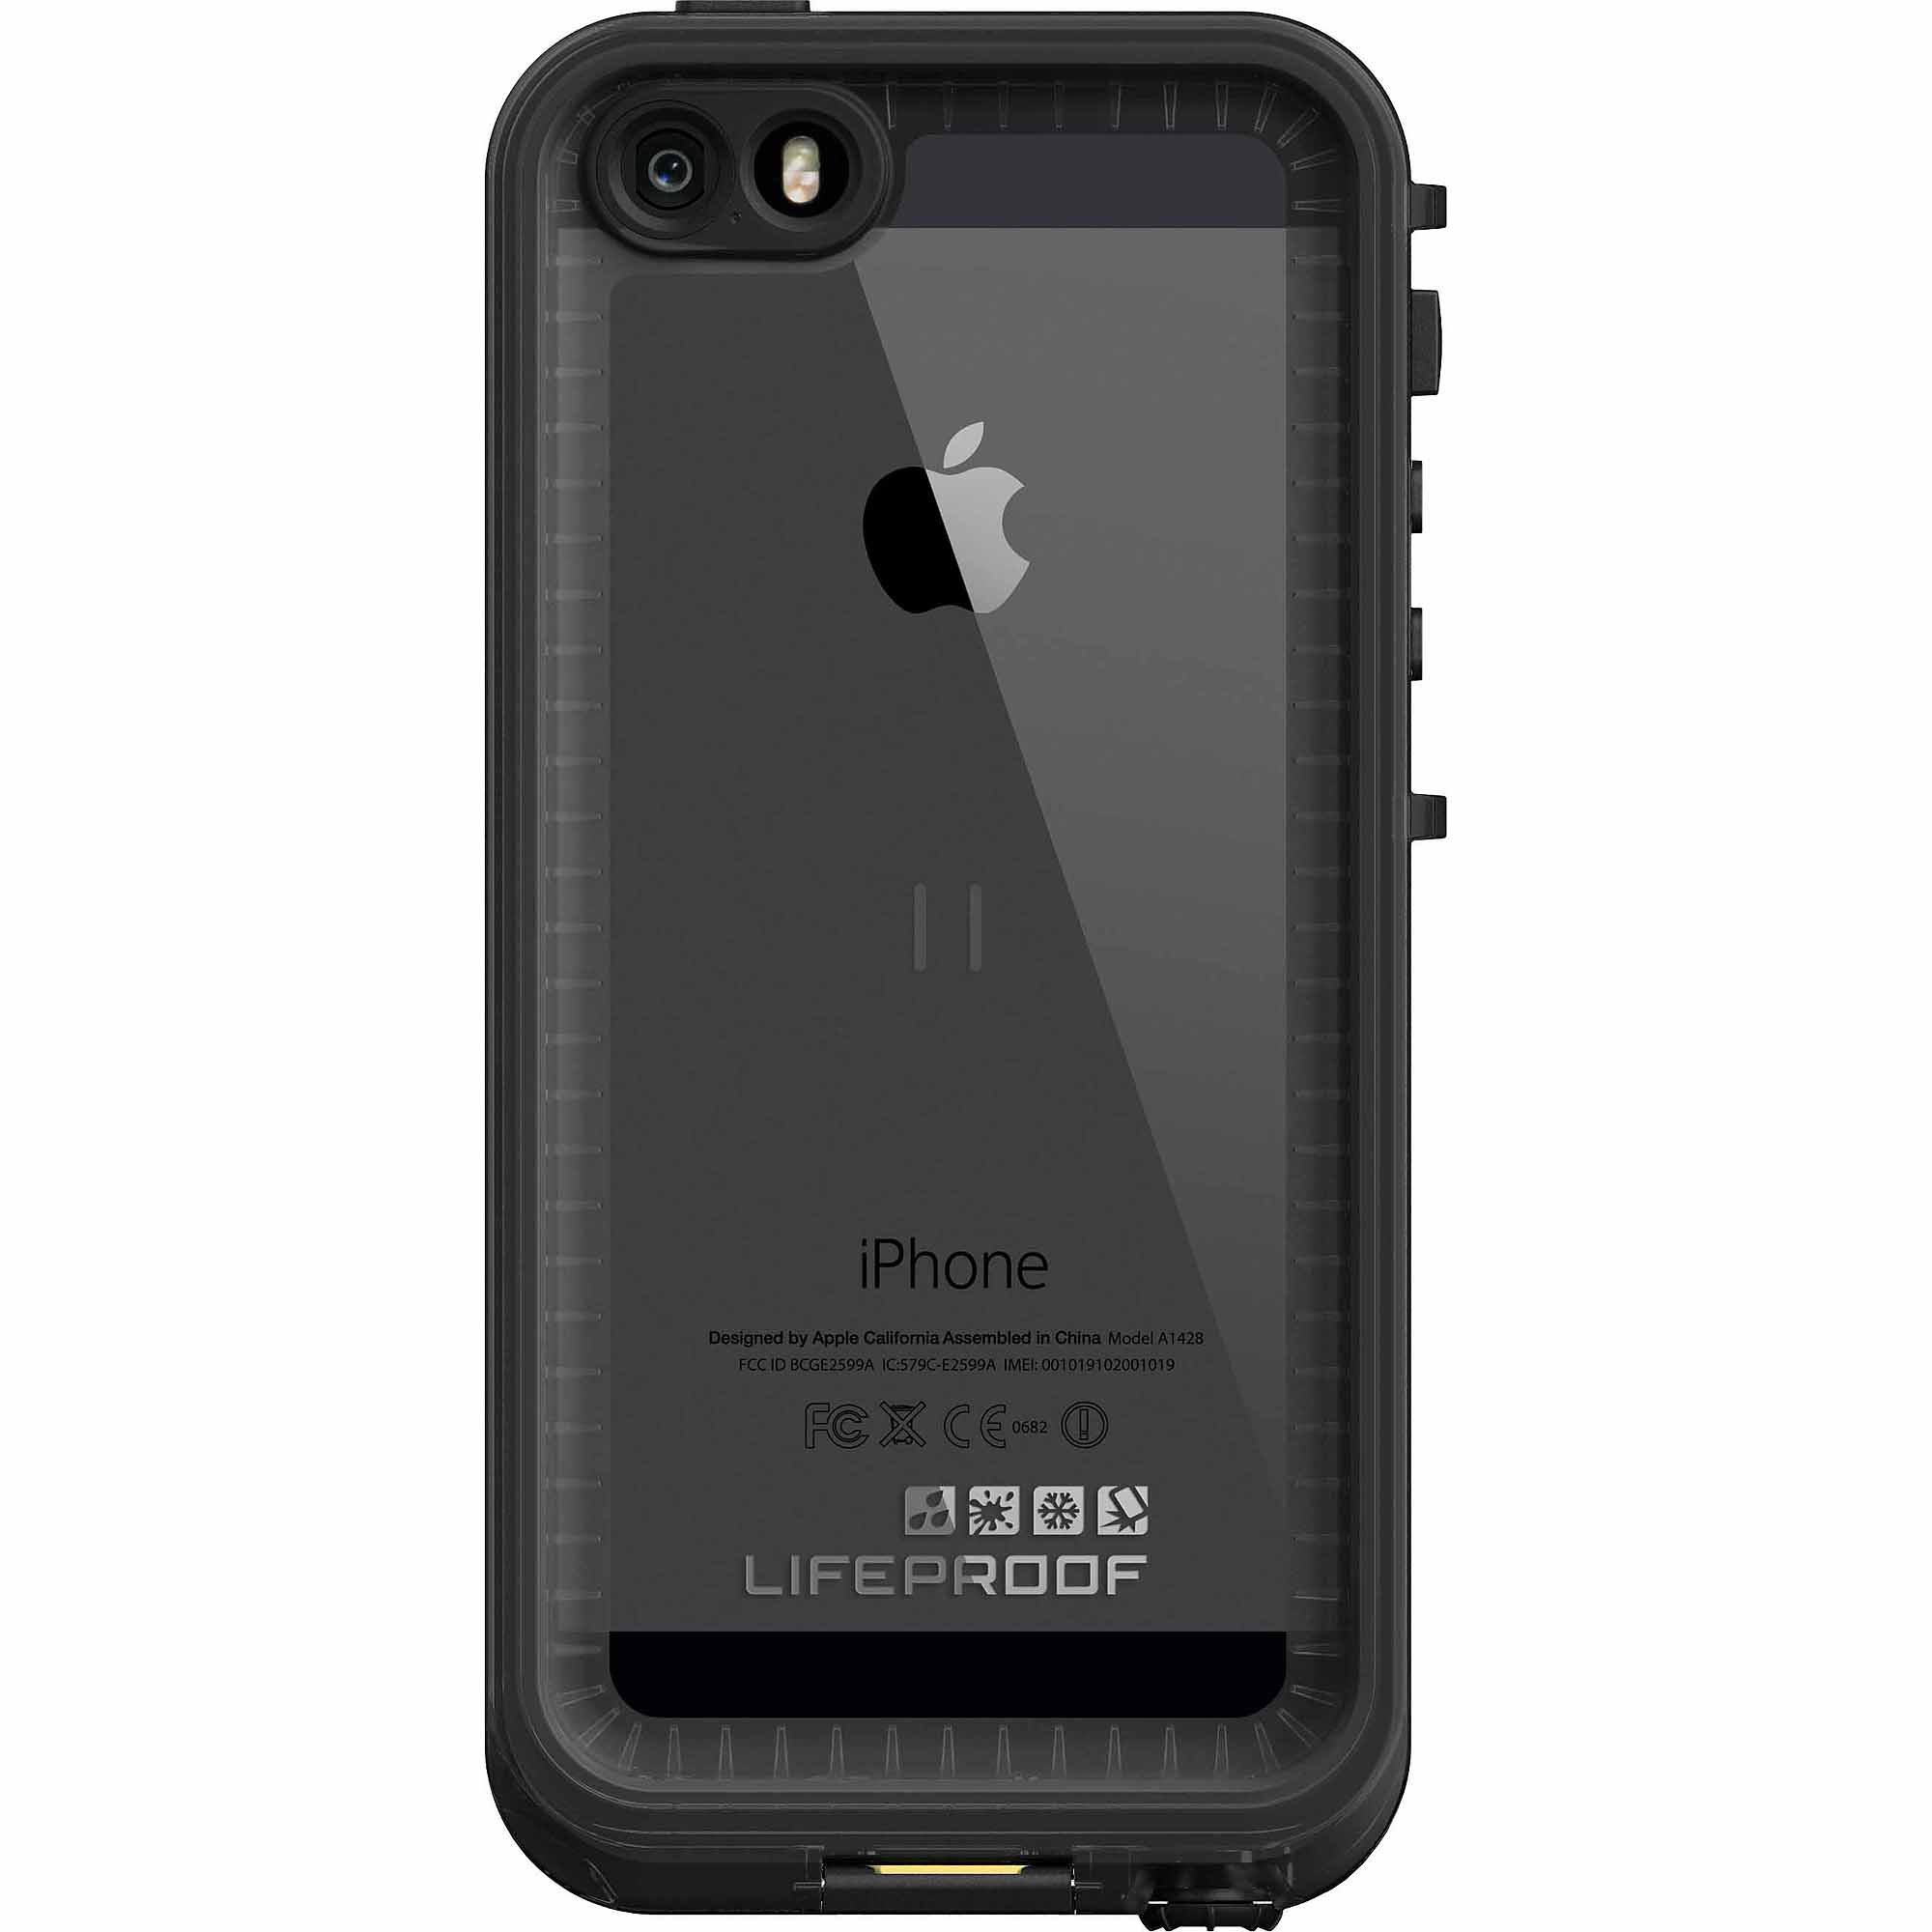 Lifeproof 5s case coupon